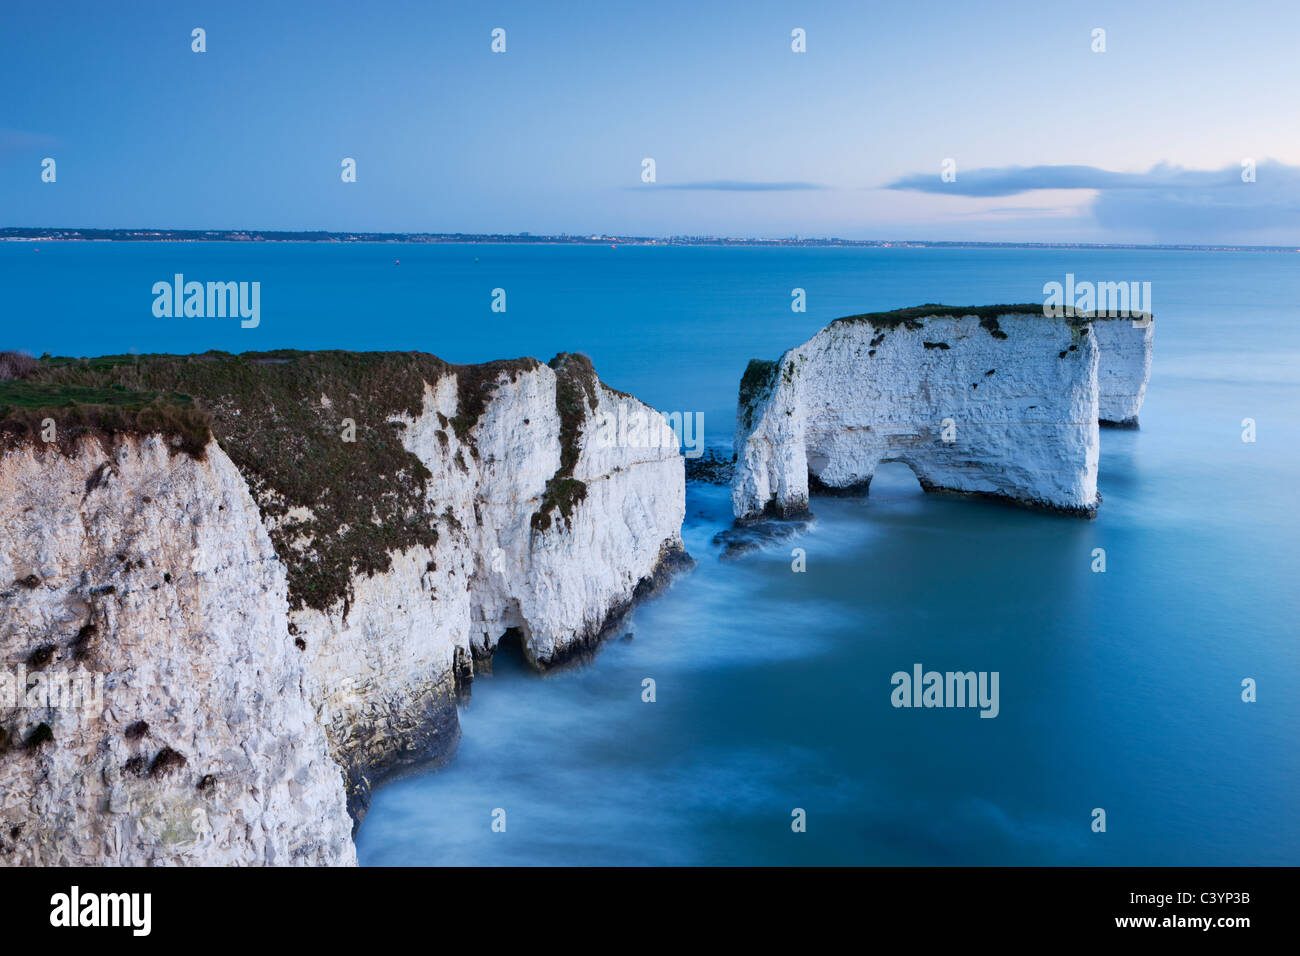 Old Harry Rocks at Handfast Point are the start of the Jurassic Coast World Heritage Site, Dorset, England. - Stock Image